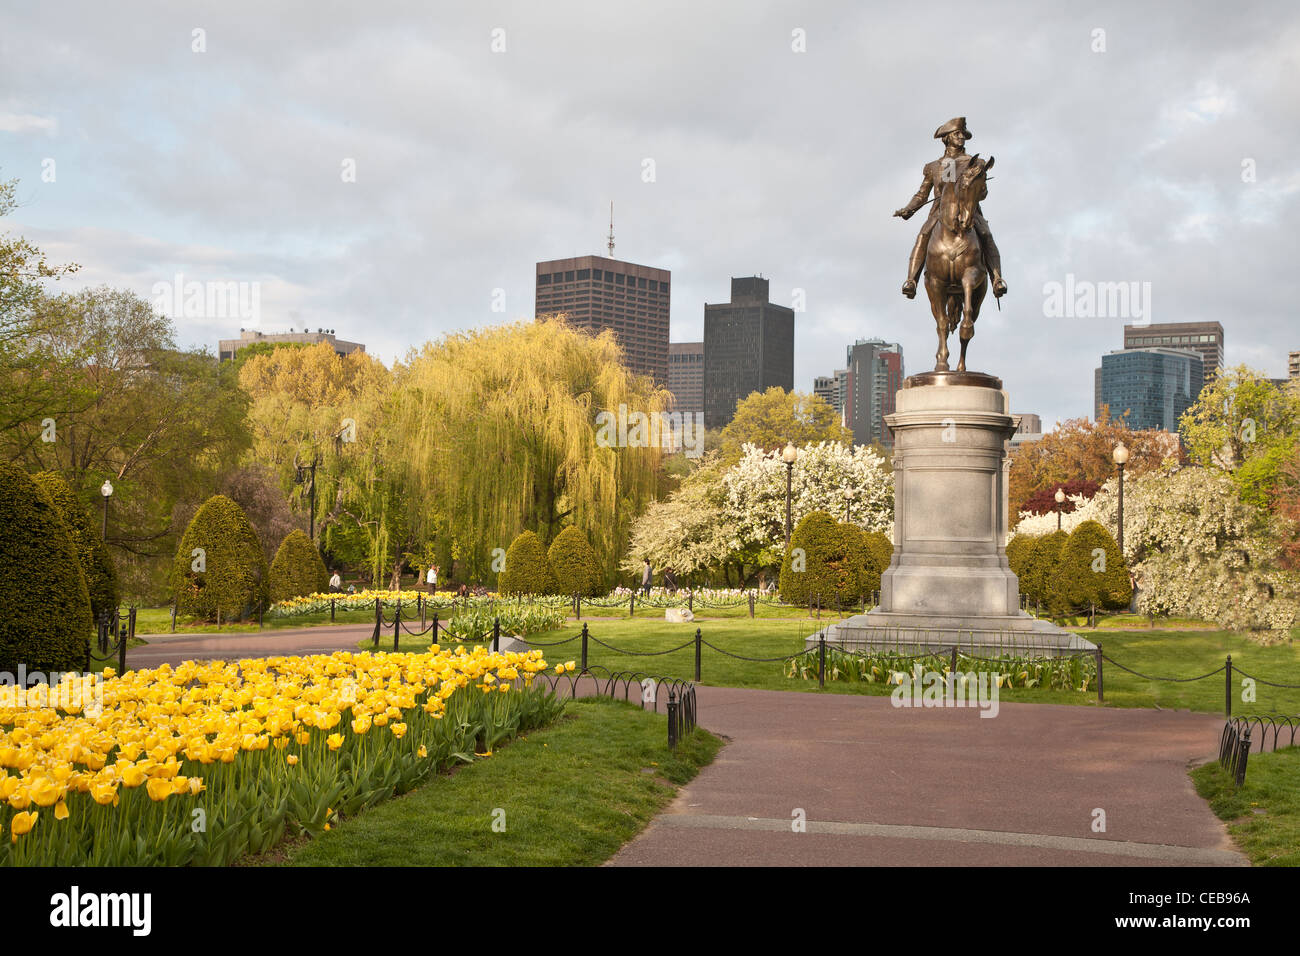 Boston Public Garden in spring with yellow tulips and statue of George Washington - Stock Image